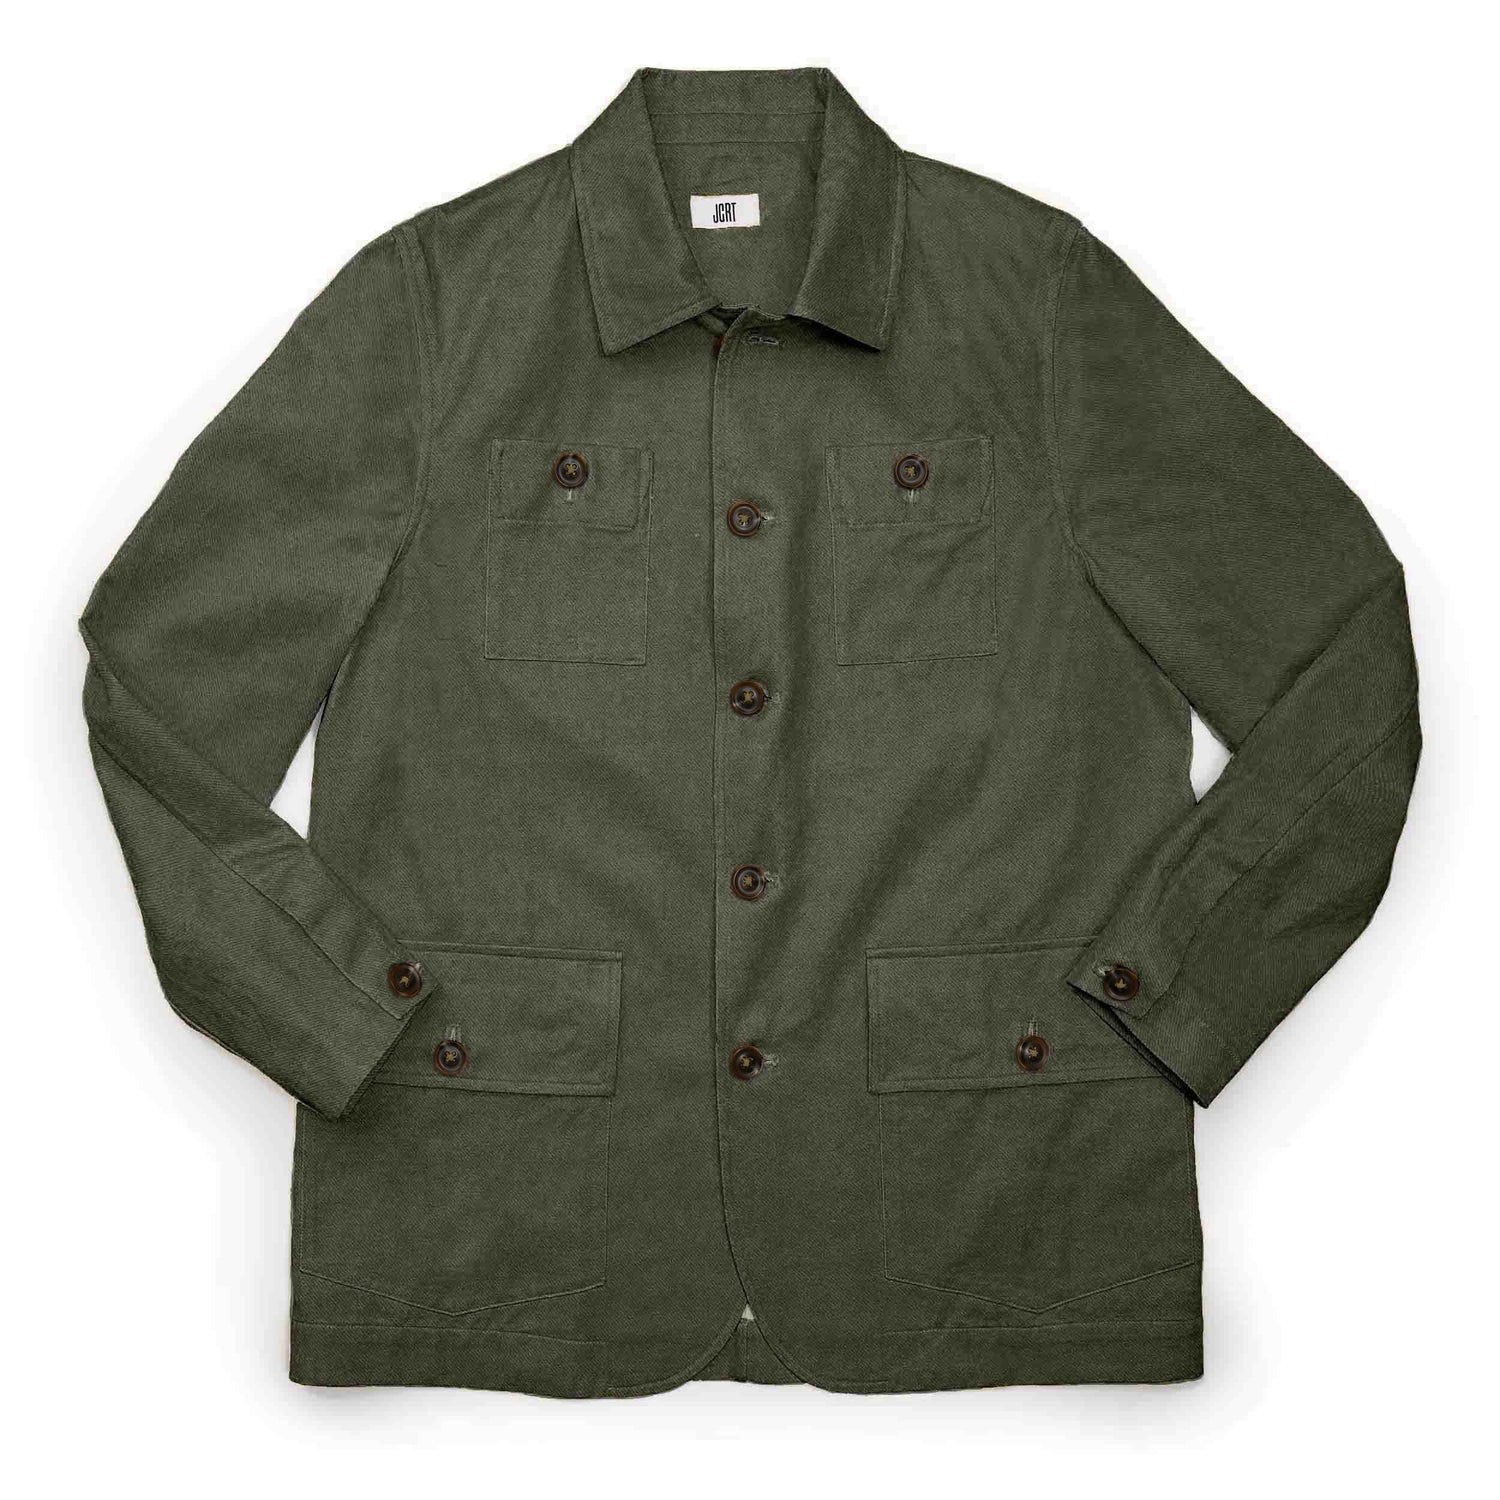 The Moss Twill Country Jacket